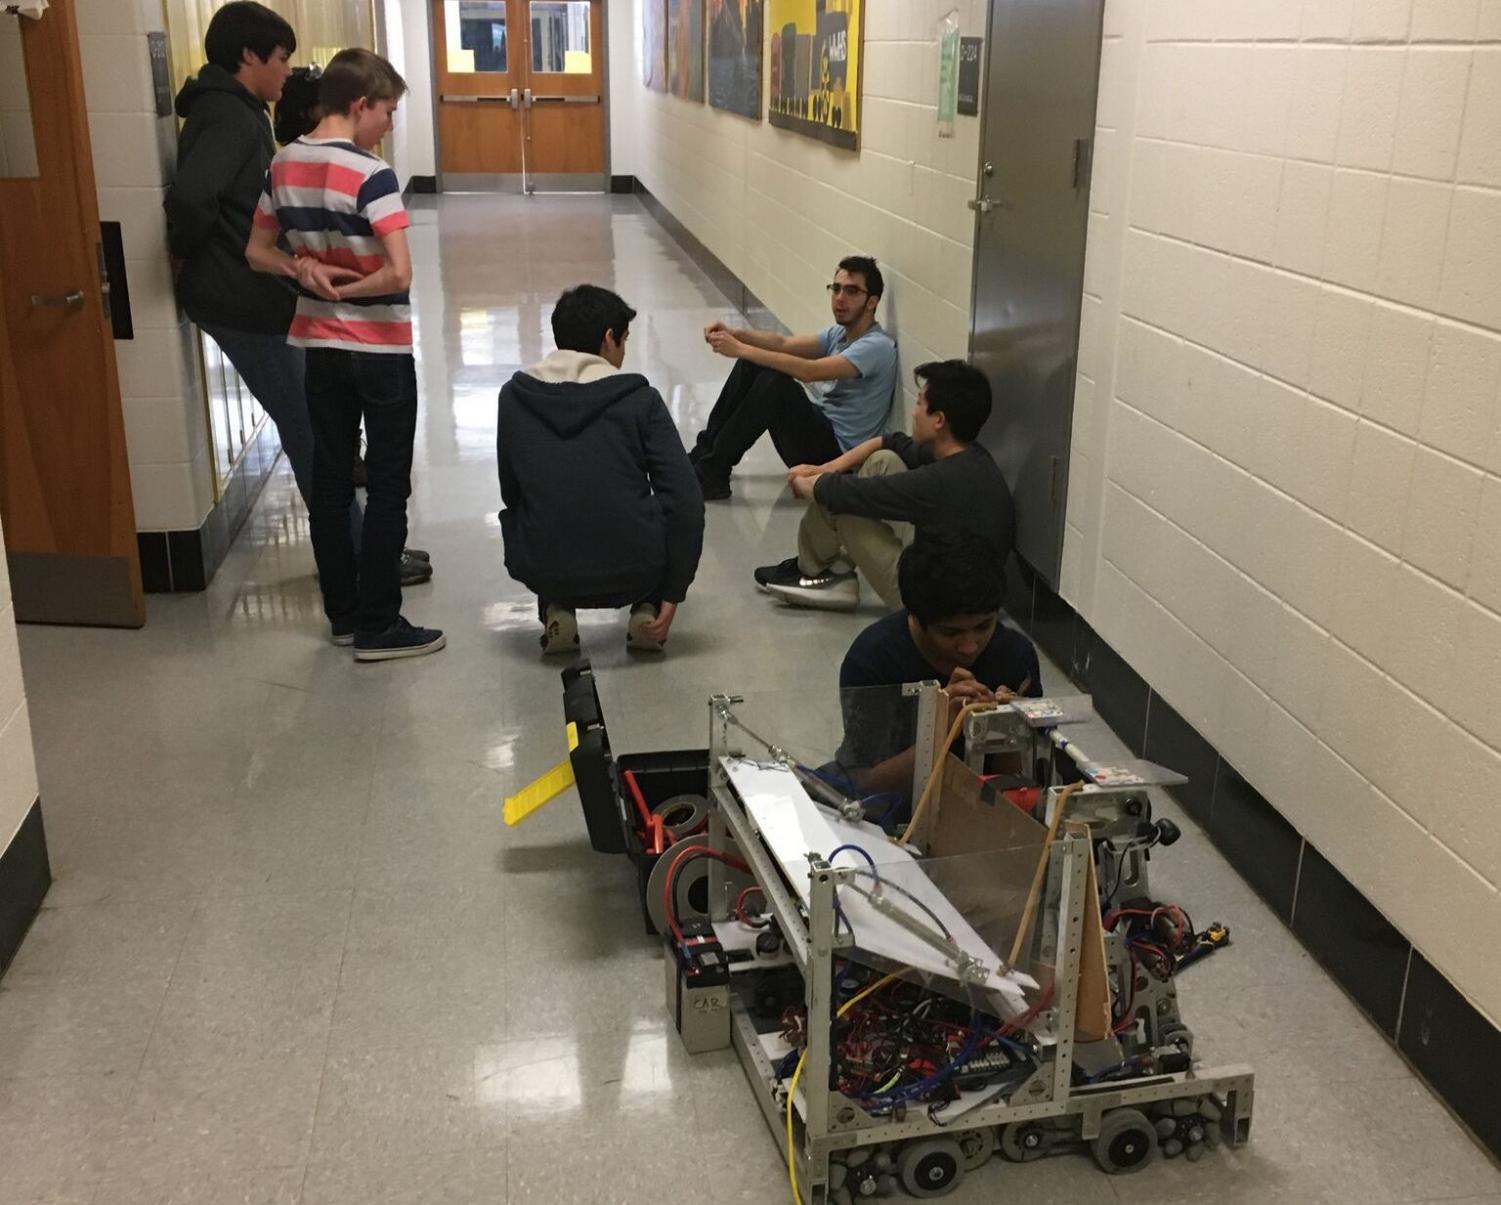 Members of the Body Electric meet and plan their robot for the FIRST competition in March. With a large group of freshmen this year, the team now has many new members to help across their mechanical, electrical and programming sub-teams. Photo by Naren Roy.